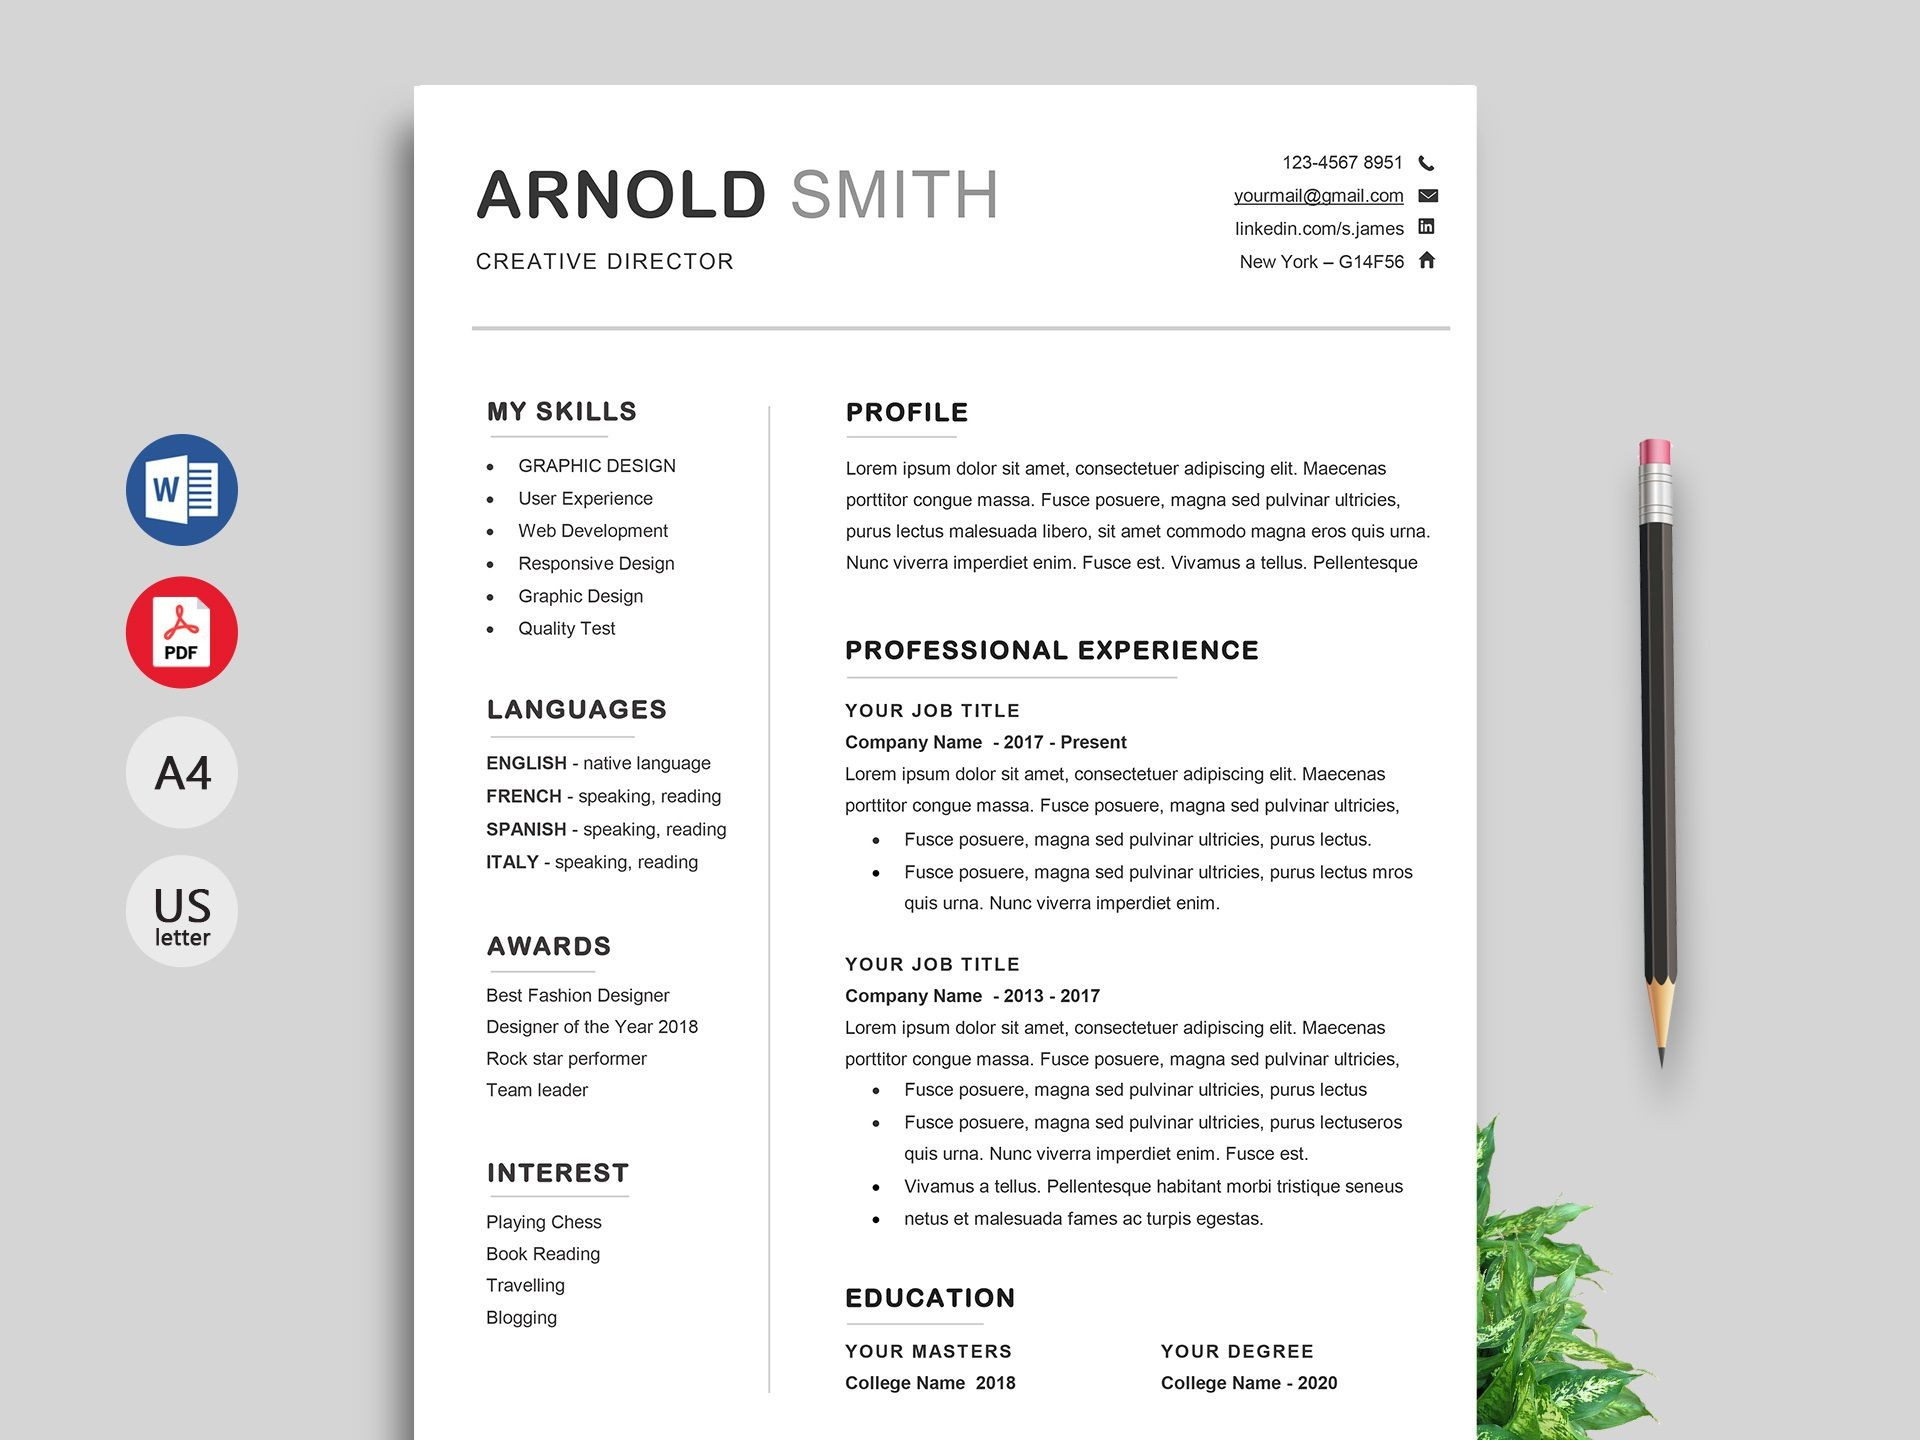 001 Best Resume Template Free Word Doc Image  Cv Download Document For Student1920